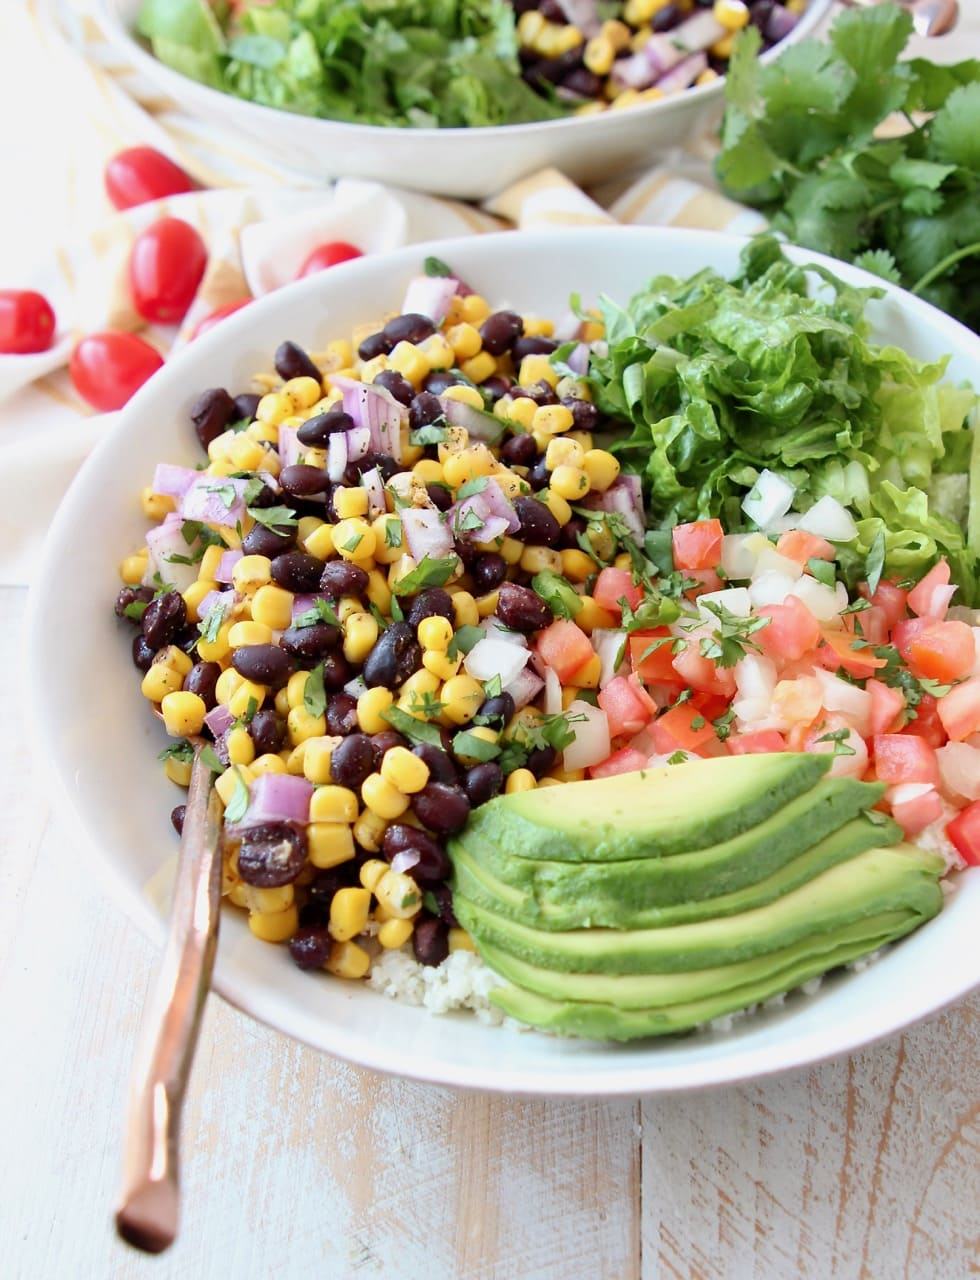 Vegan burrito bowl topped with avocado, black beans, corn, tomatoes and romaine lettuce